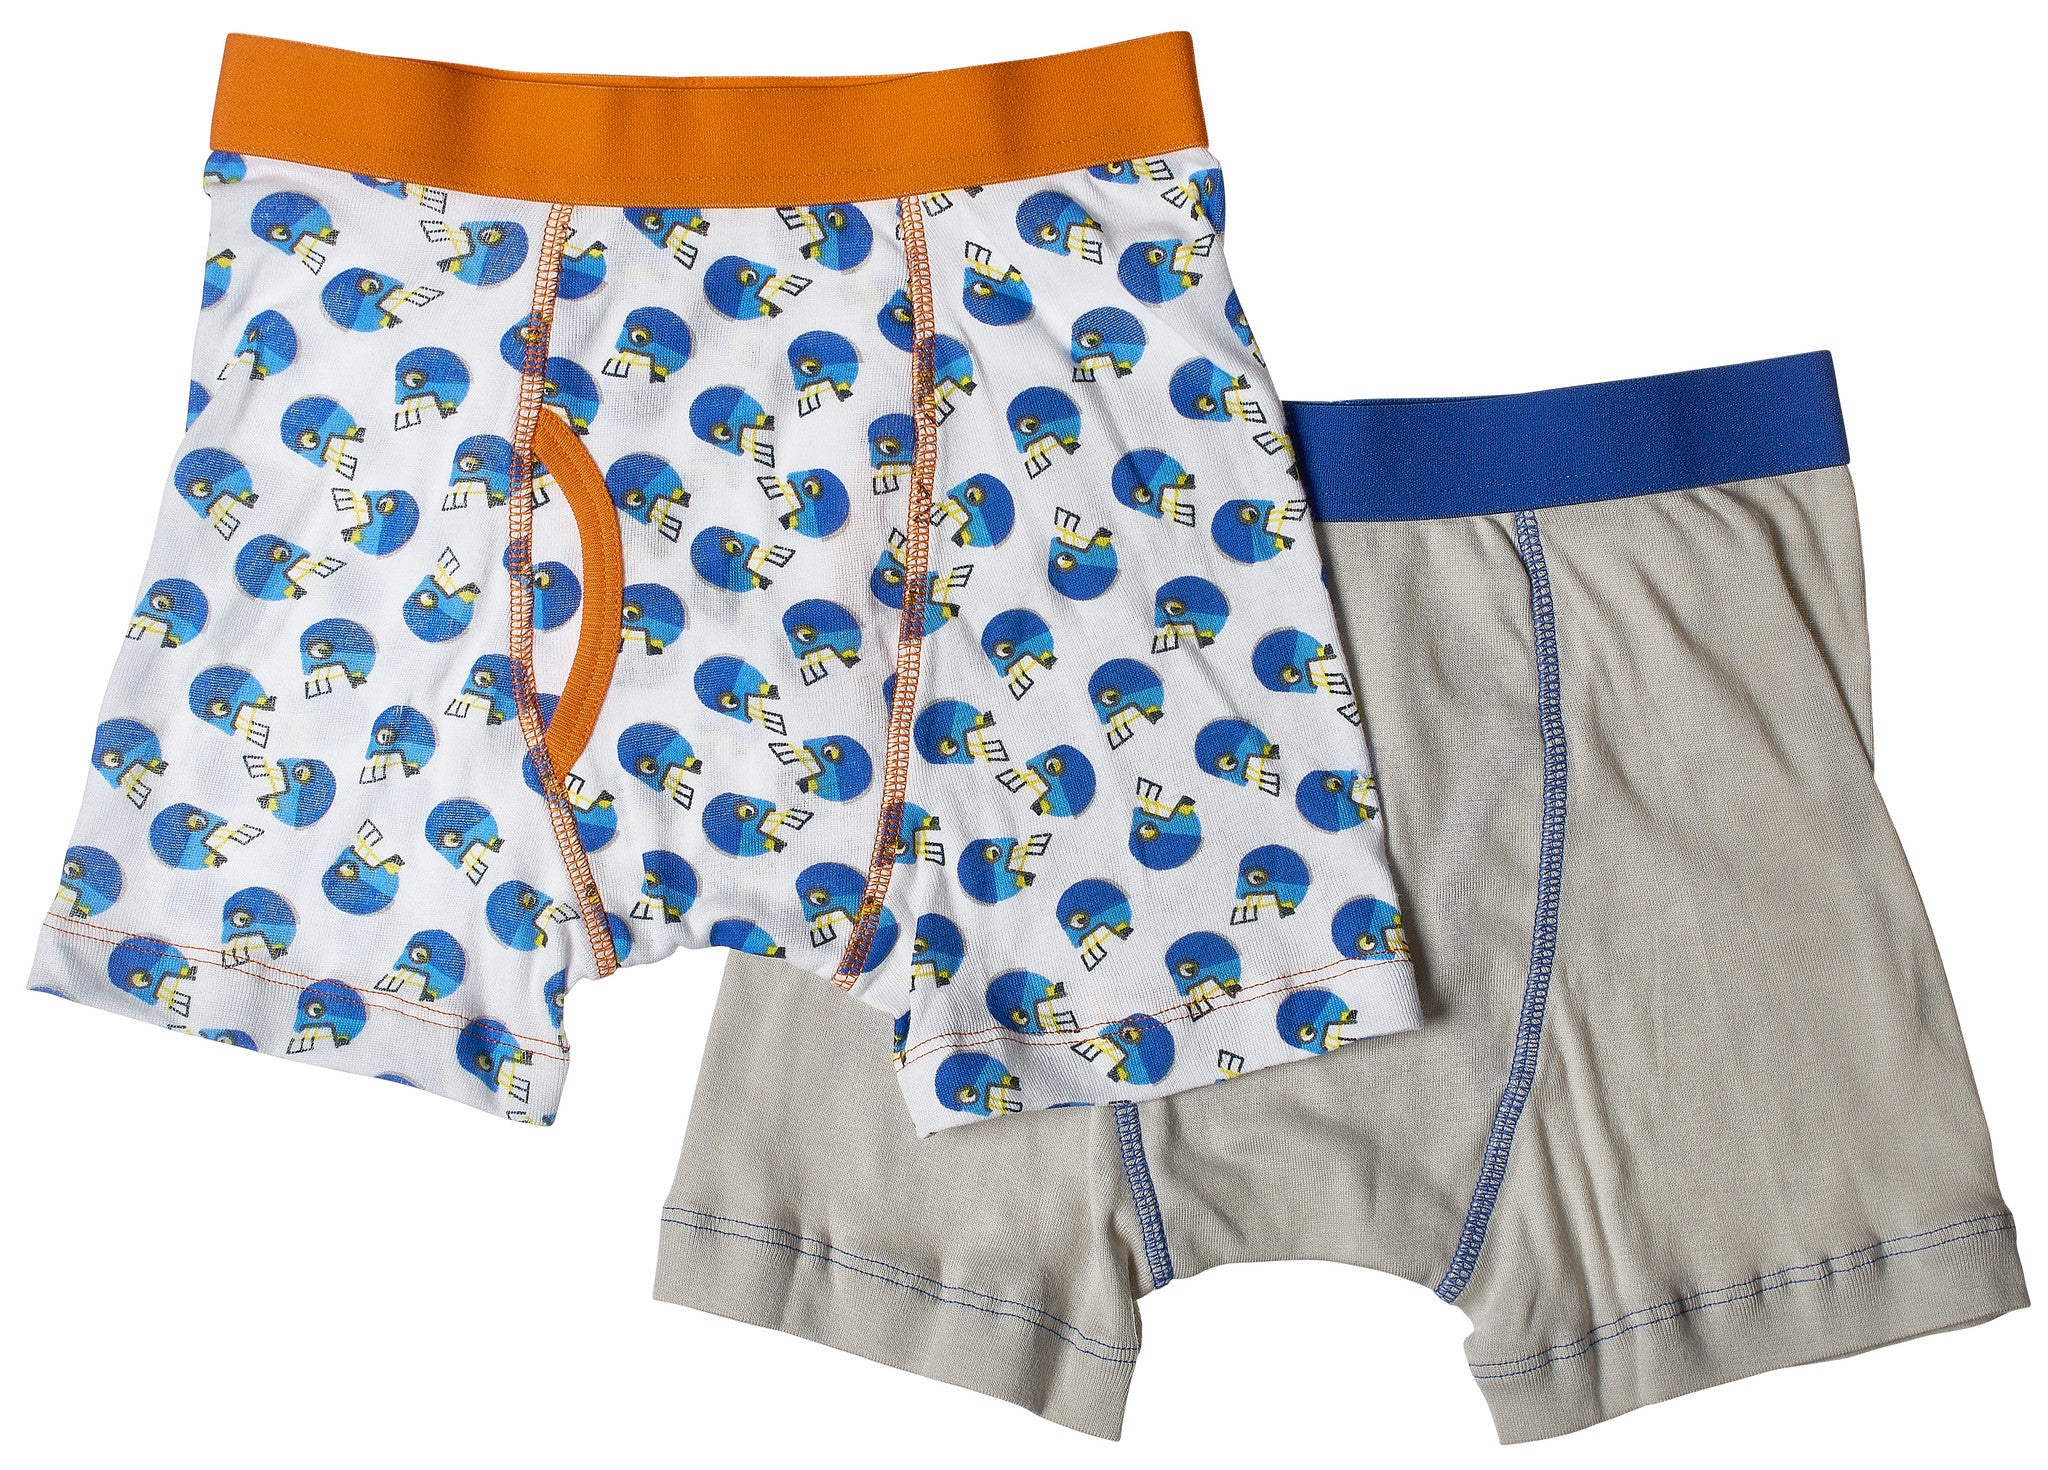 2-Pack Football Stars 100% Cotton Fashion Printed Boxer Briefs